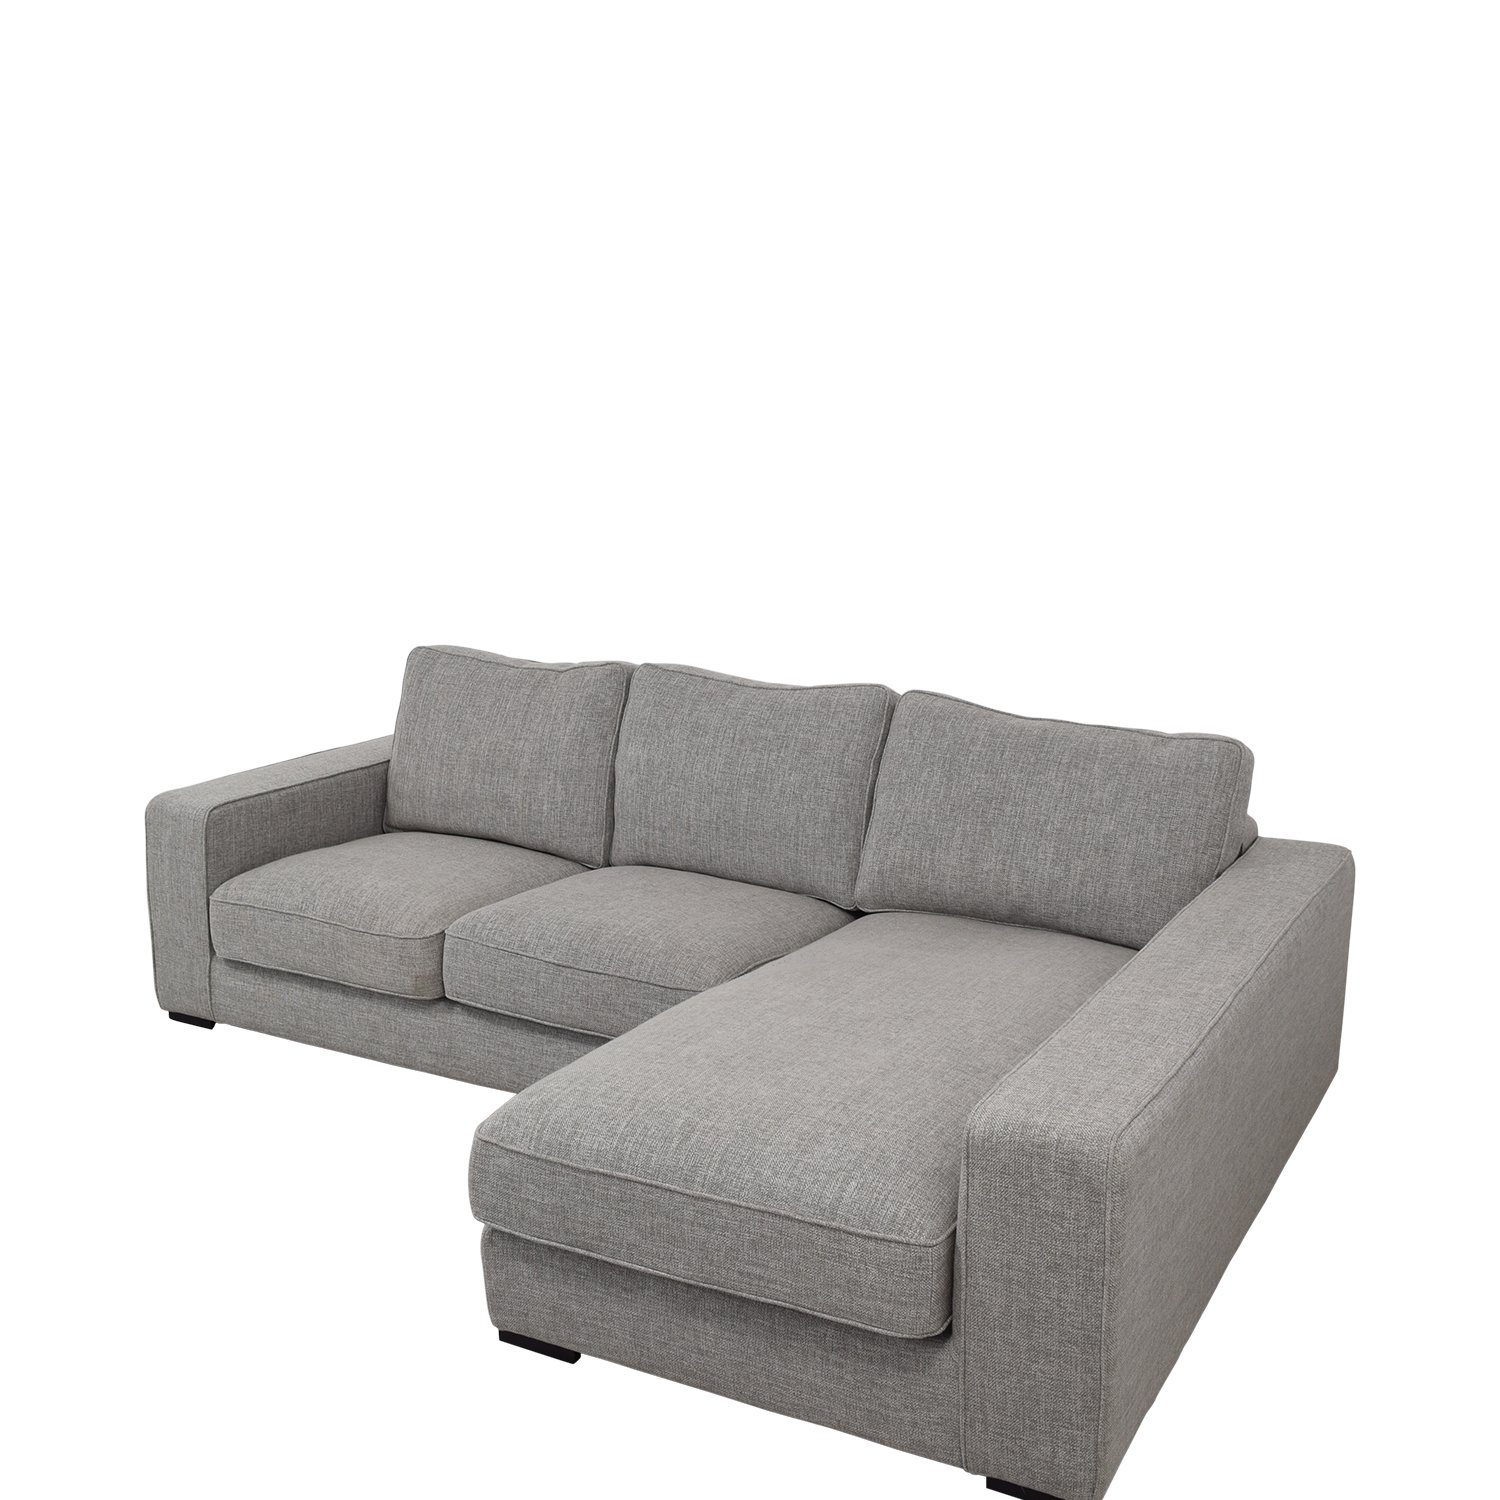 Interior Define Light Gray Ainsley Right Arm Deep Sectional Sofa second hand